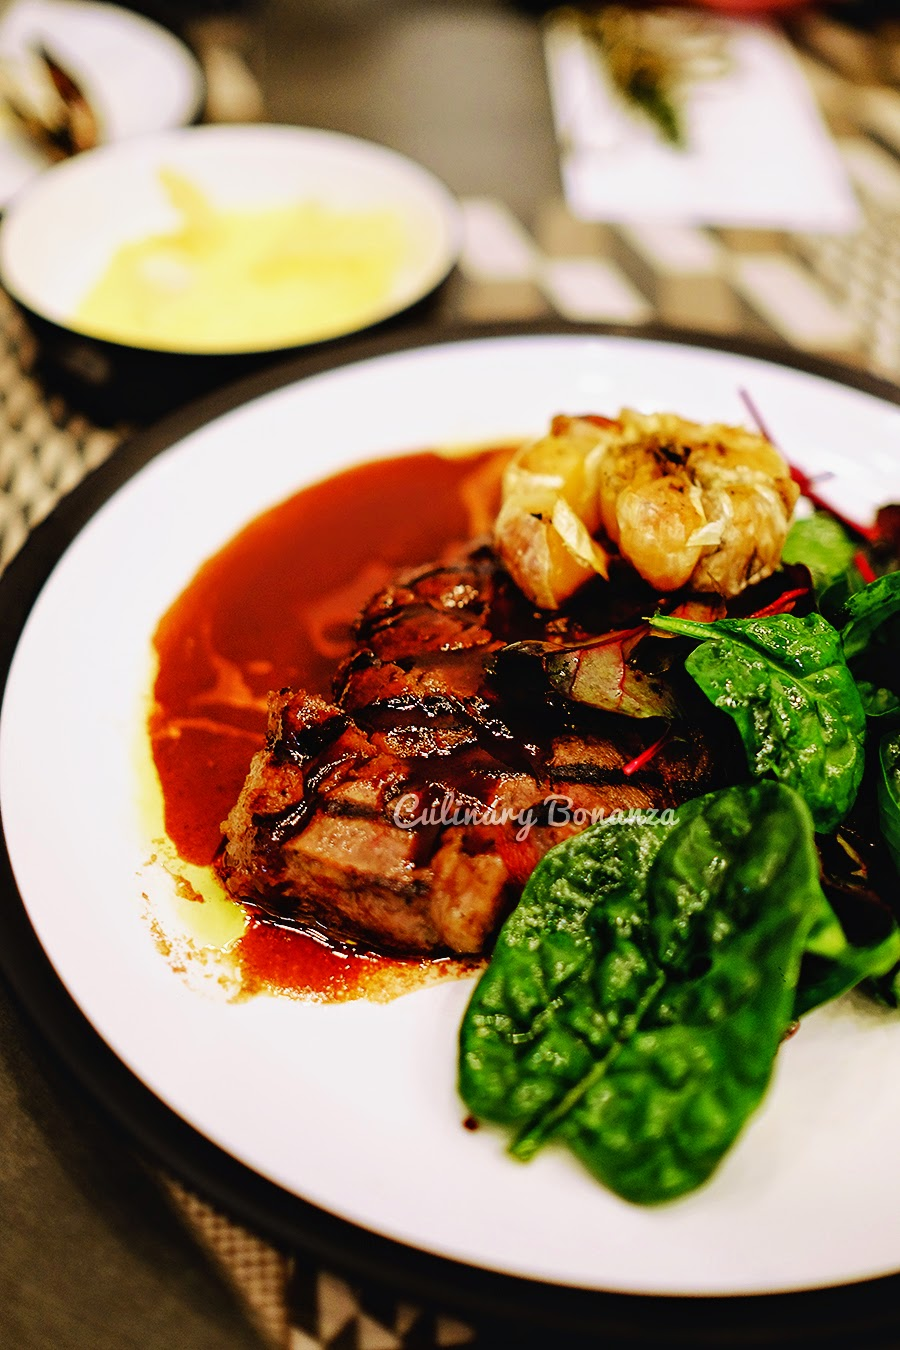 Bistecca at GIA Italian Restaurant and Lounge Jakarta (source www.culinarybonanza.com)